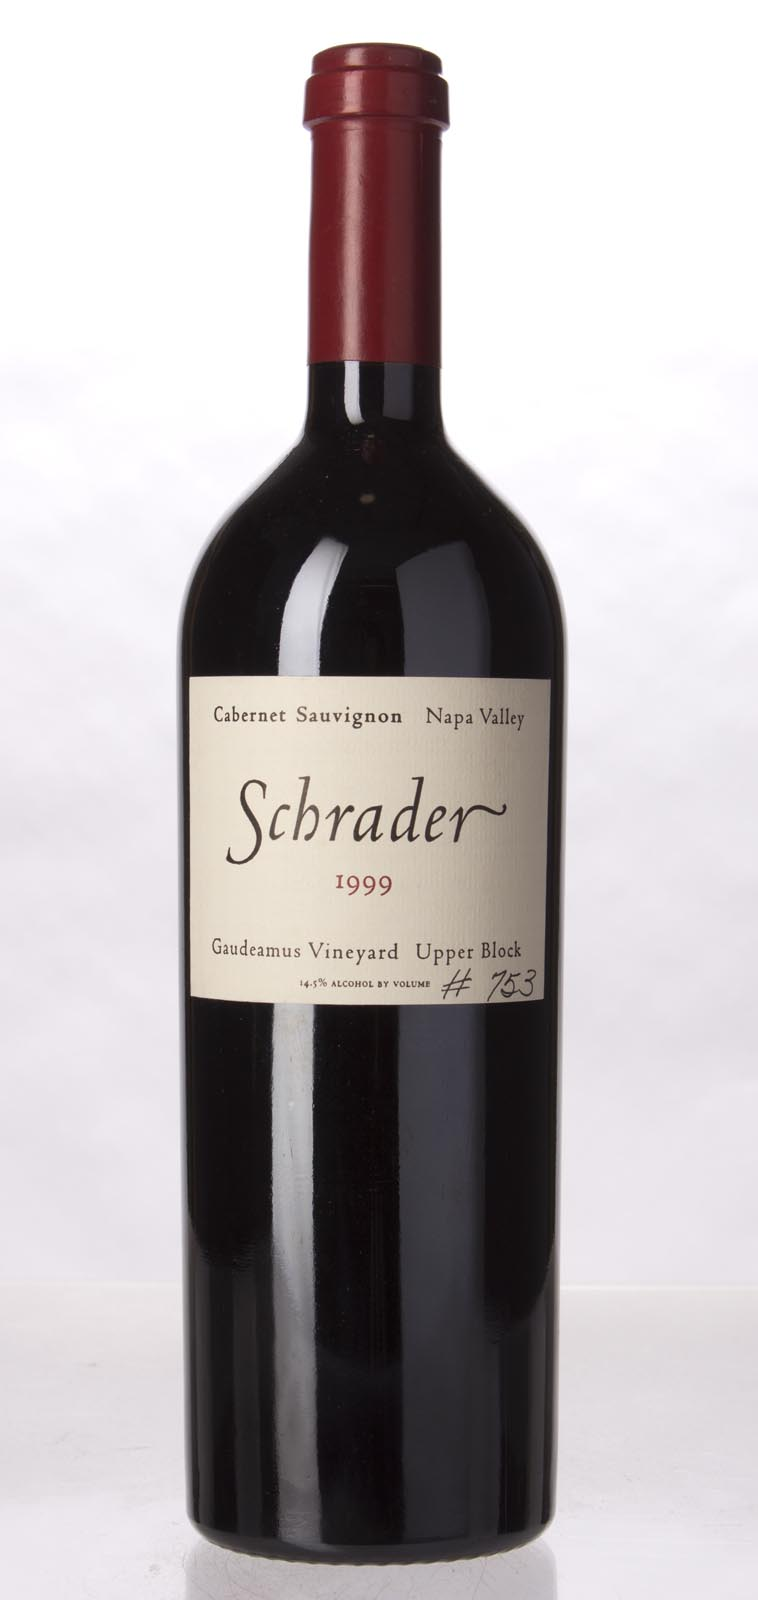 Schrader Cellars Cabernet Sauvignon Gaudeamus Vineyard Upper Block 1999, 750mL () from The BPW - Merchants of rare and fine wines.